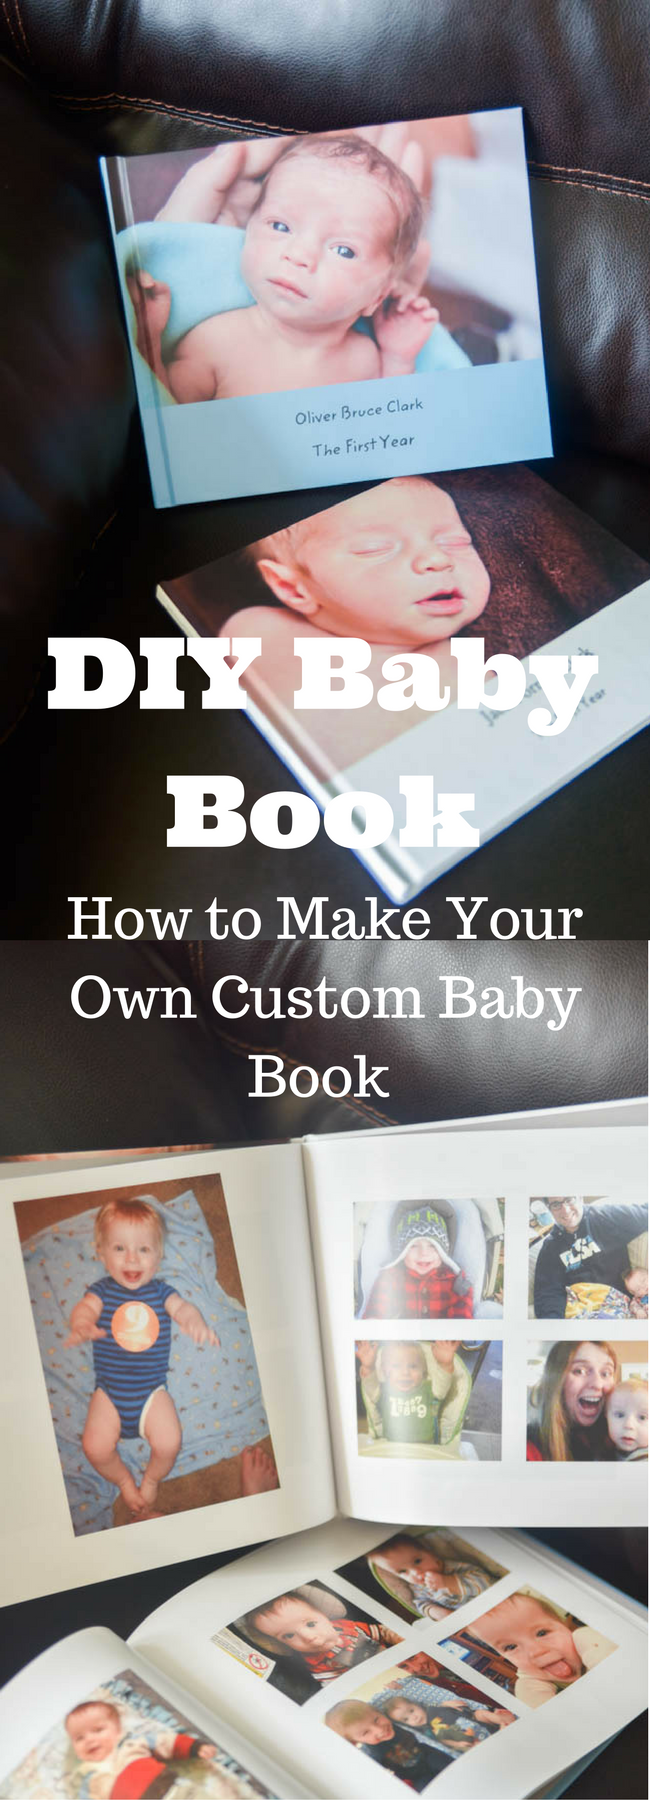 DIY Baby Book / Baby Book Ideas / DIY Baby Book Ideas / Baby's First Year / Make Your own Baby Book / Baby Book Page Ideas